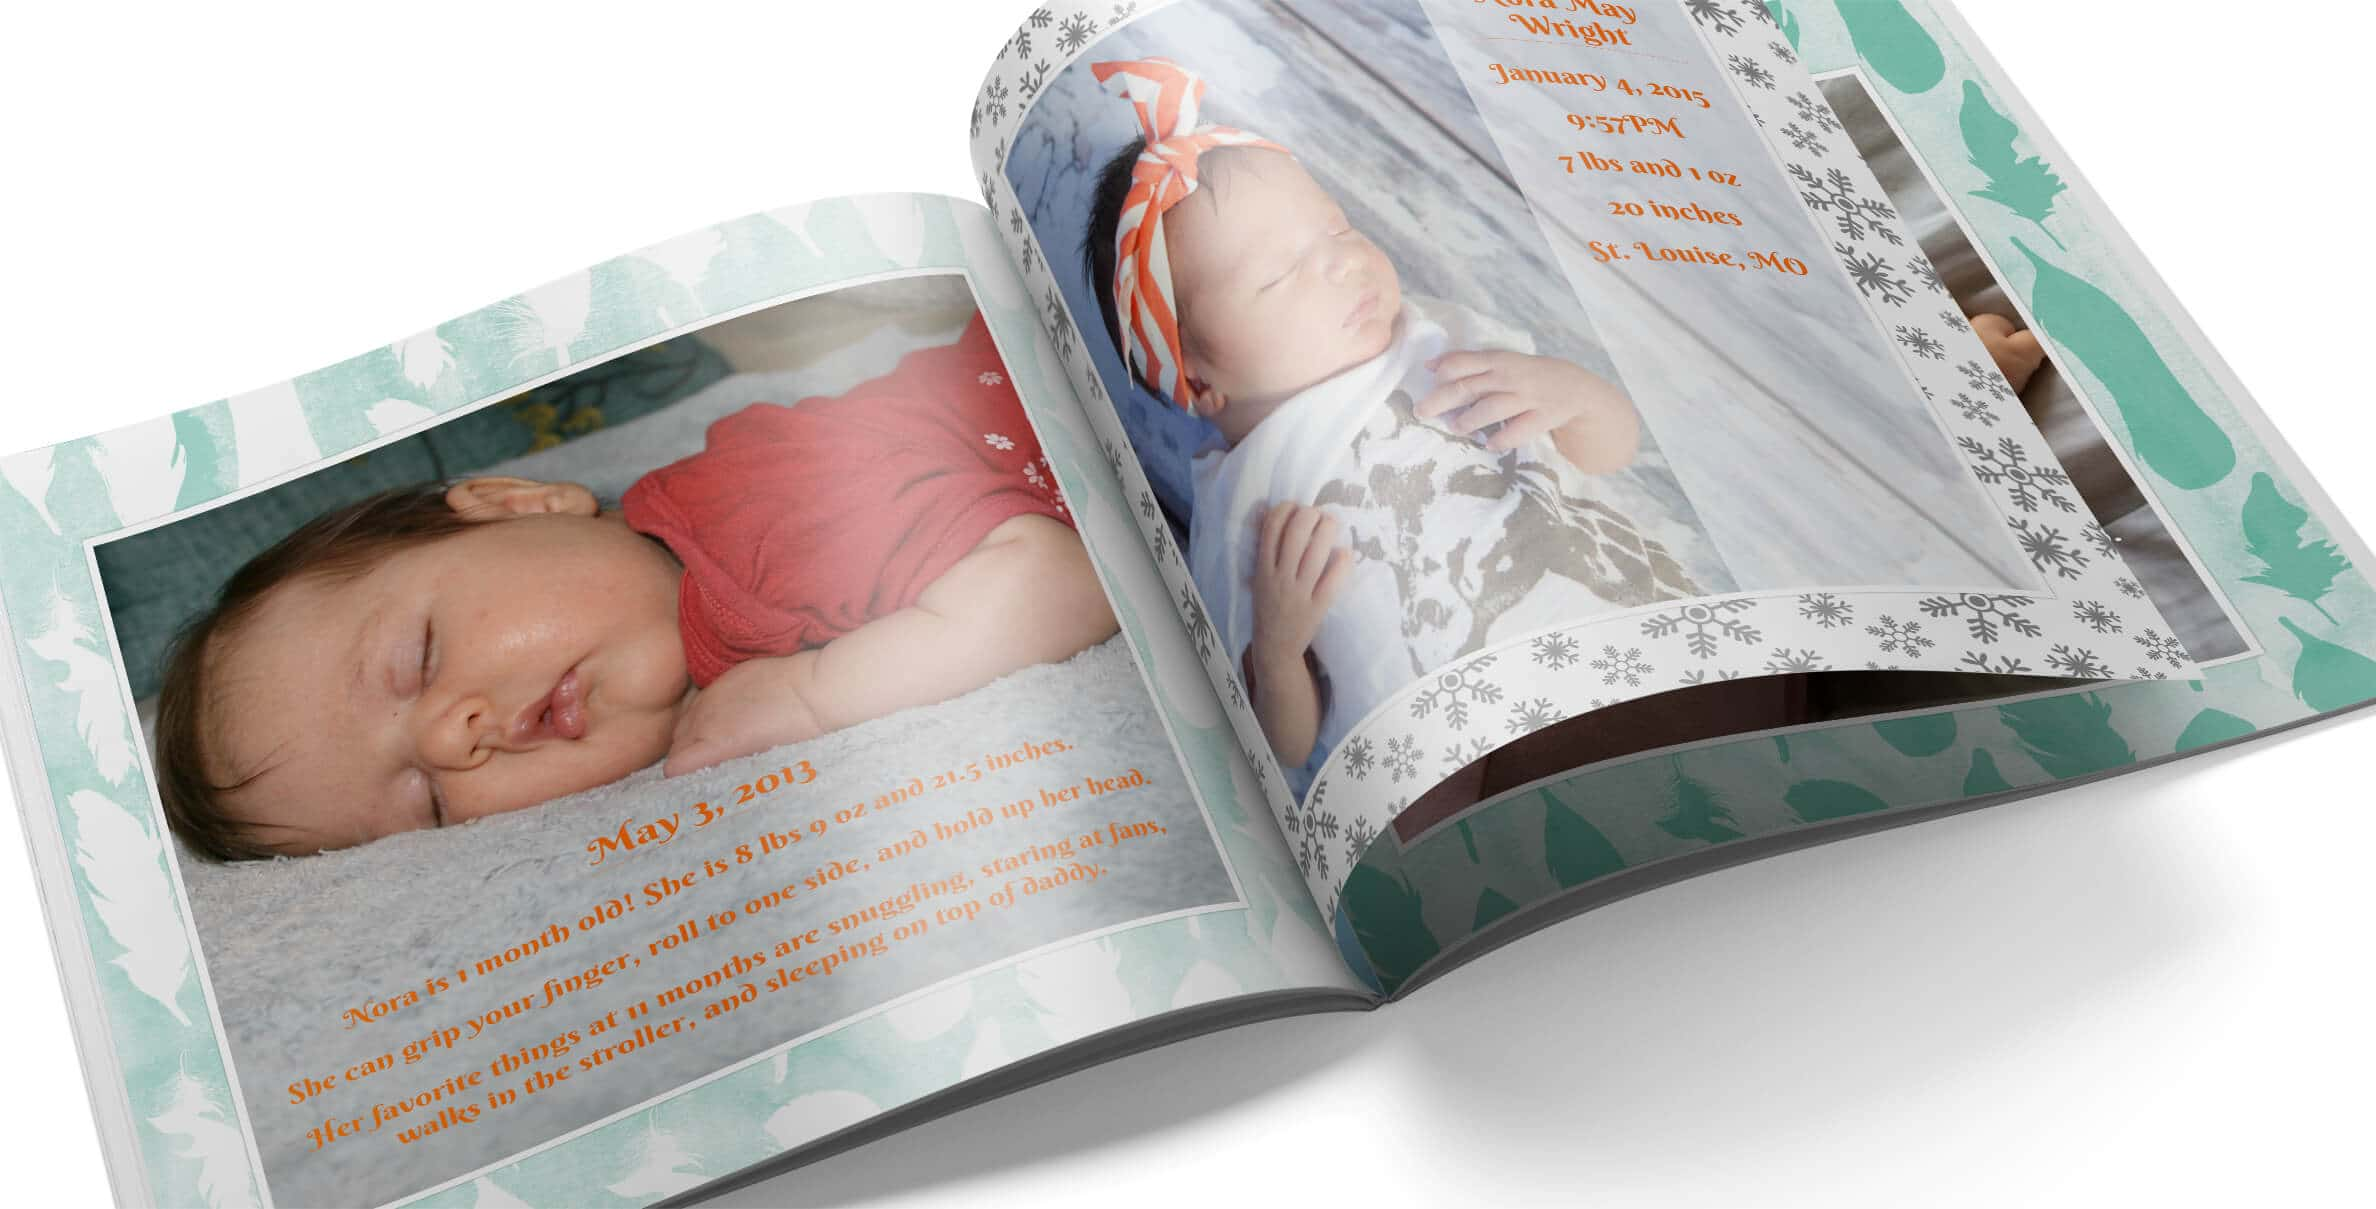 Building BabyPage com - A Modern Baby Books Startup